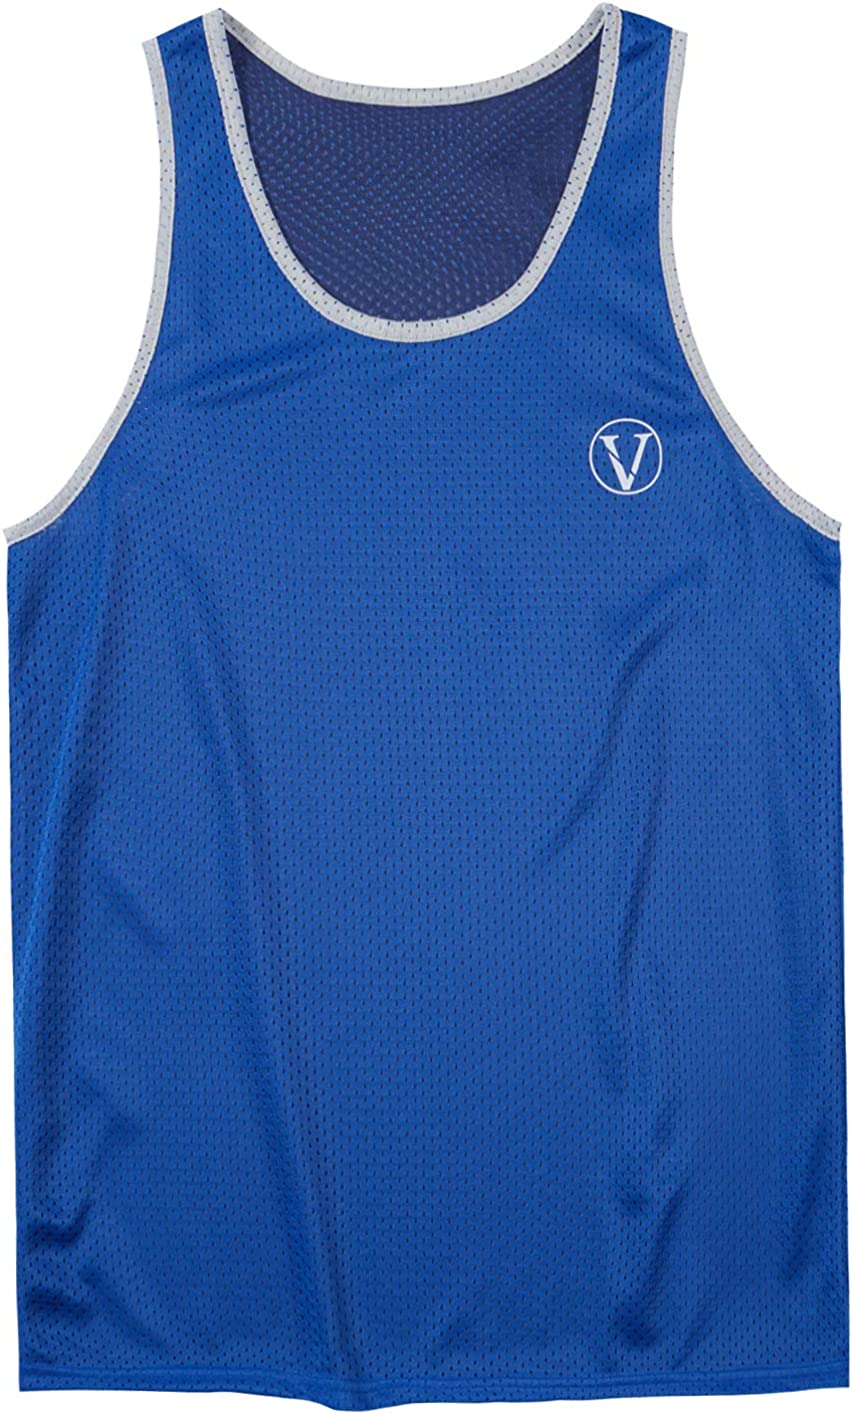 Vogyal Mens Reversible Tank Tops Mesh Sleeveless Shirts for Athletic Gym Workout Bodybuilding Sports: Clothing